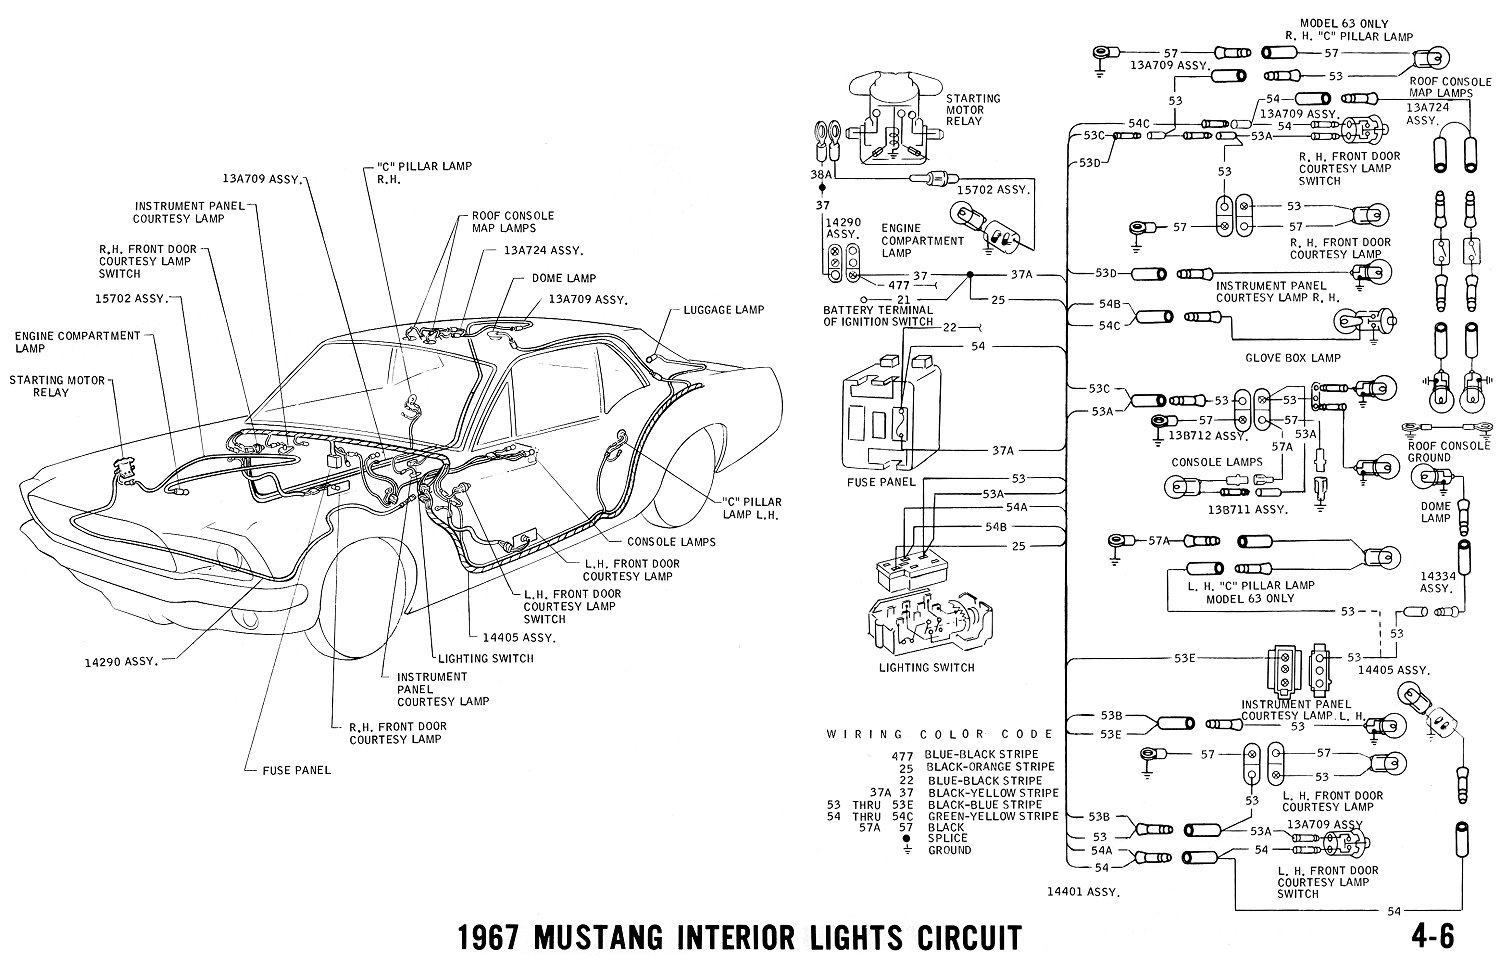 1967 Mustang Wiring And Vacuum Diagrams Average Joe Restoration Am Looking For A 1970 Ford V8 Harness Pictorial Schematic